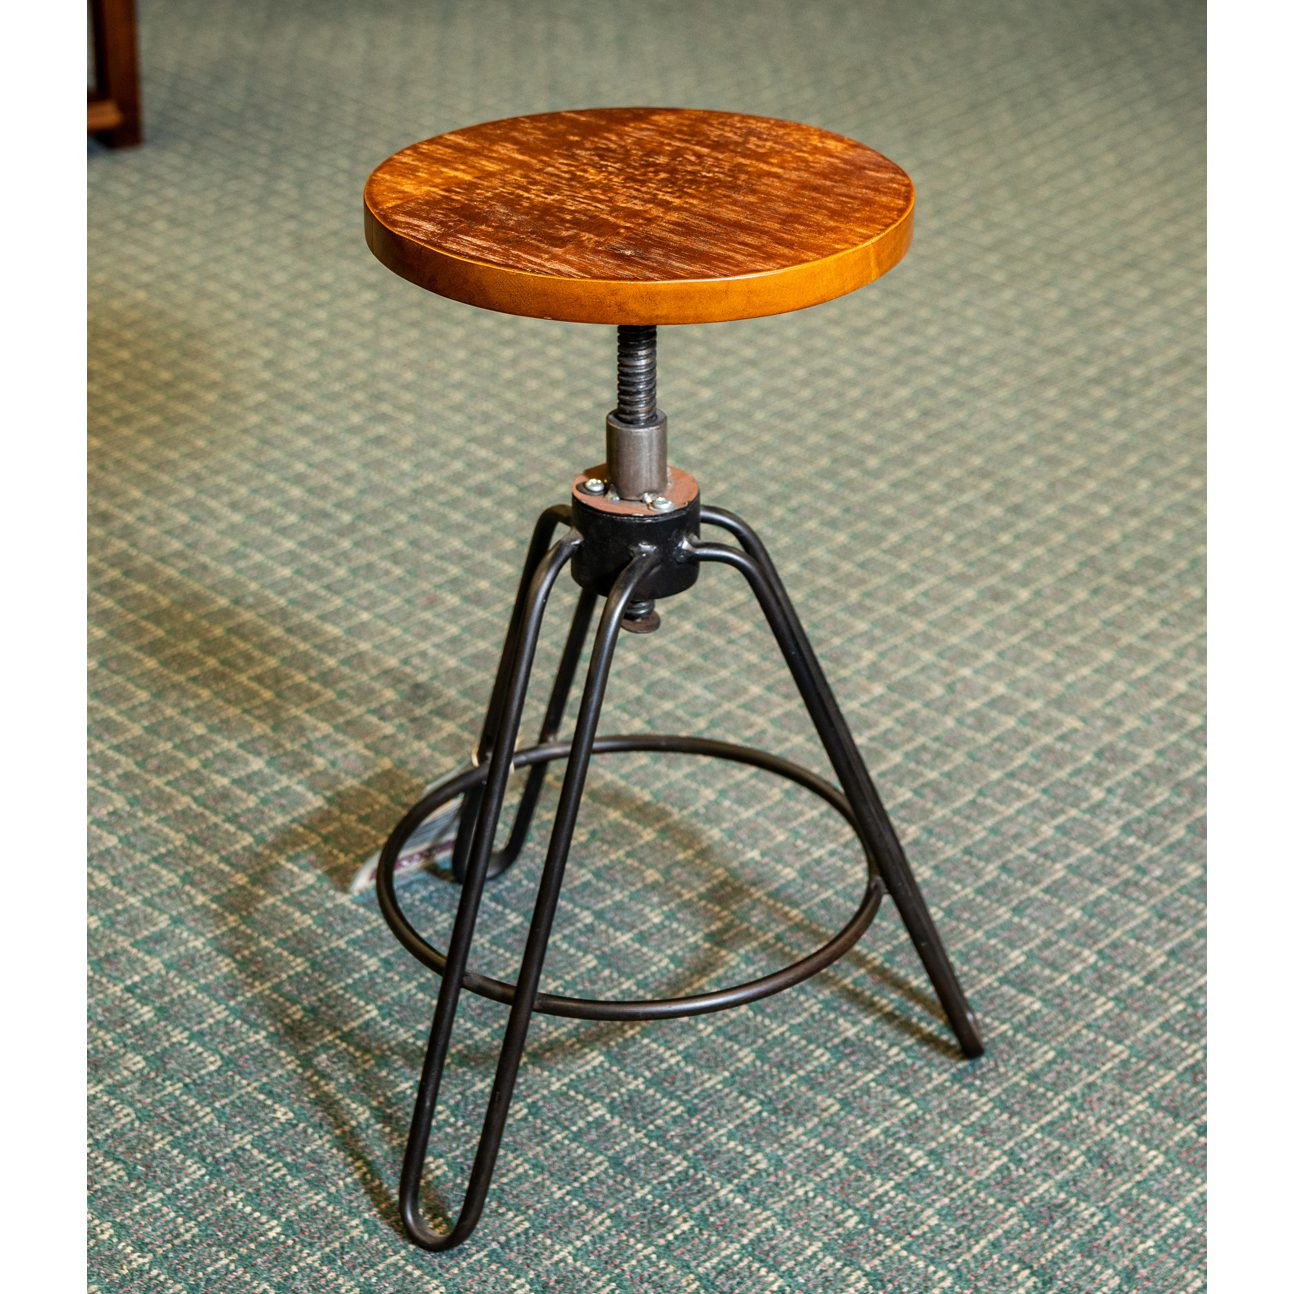 Screw Stool - Discounted